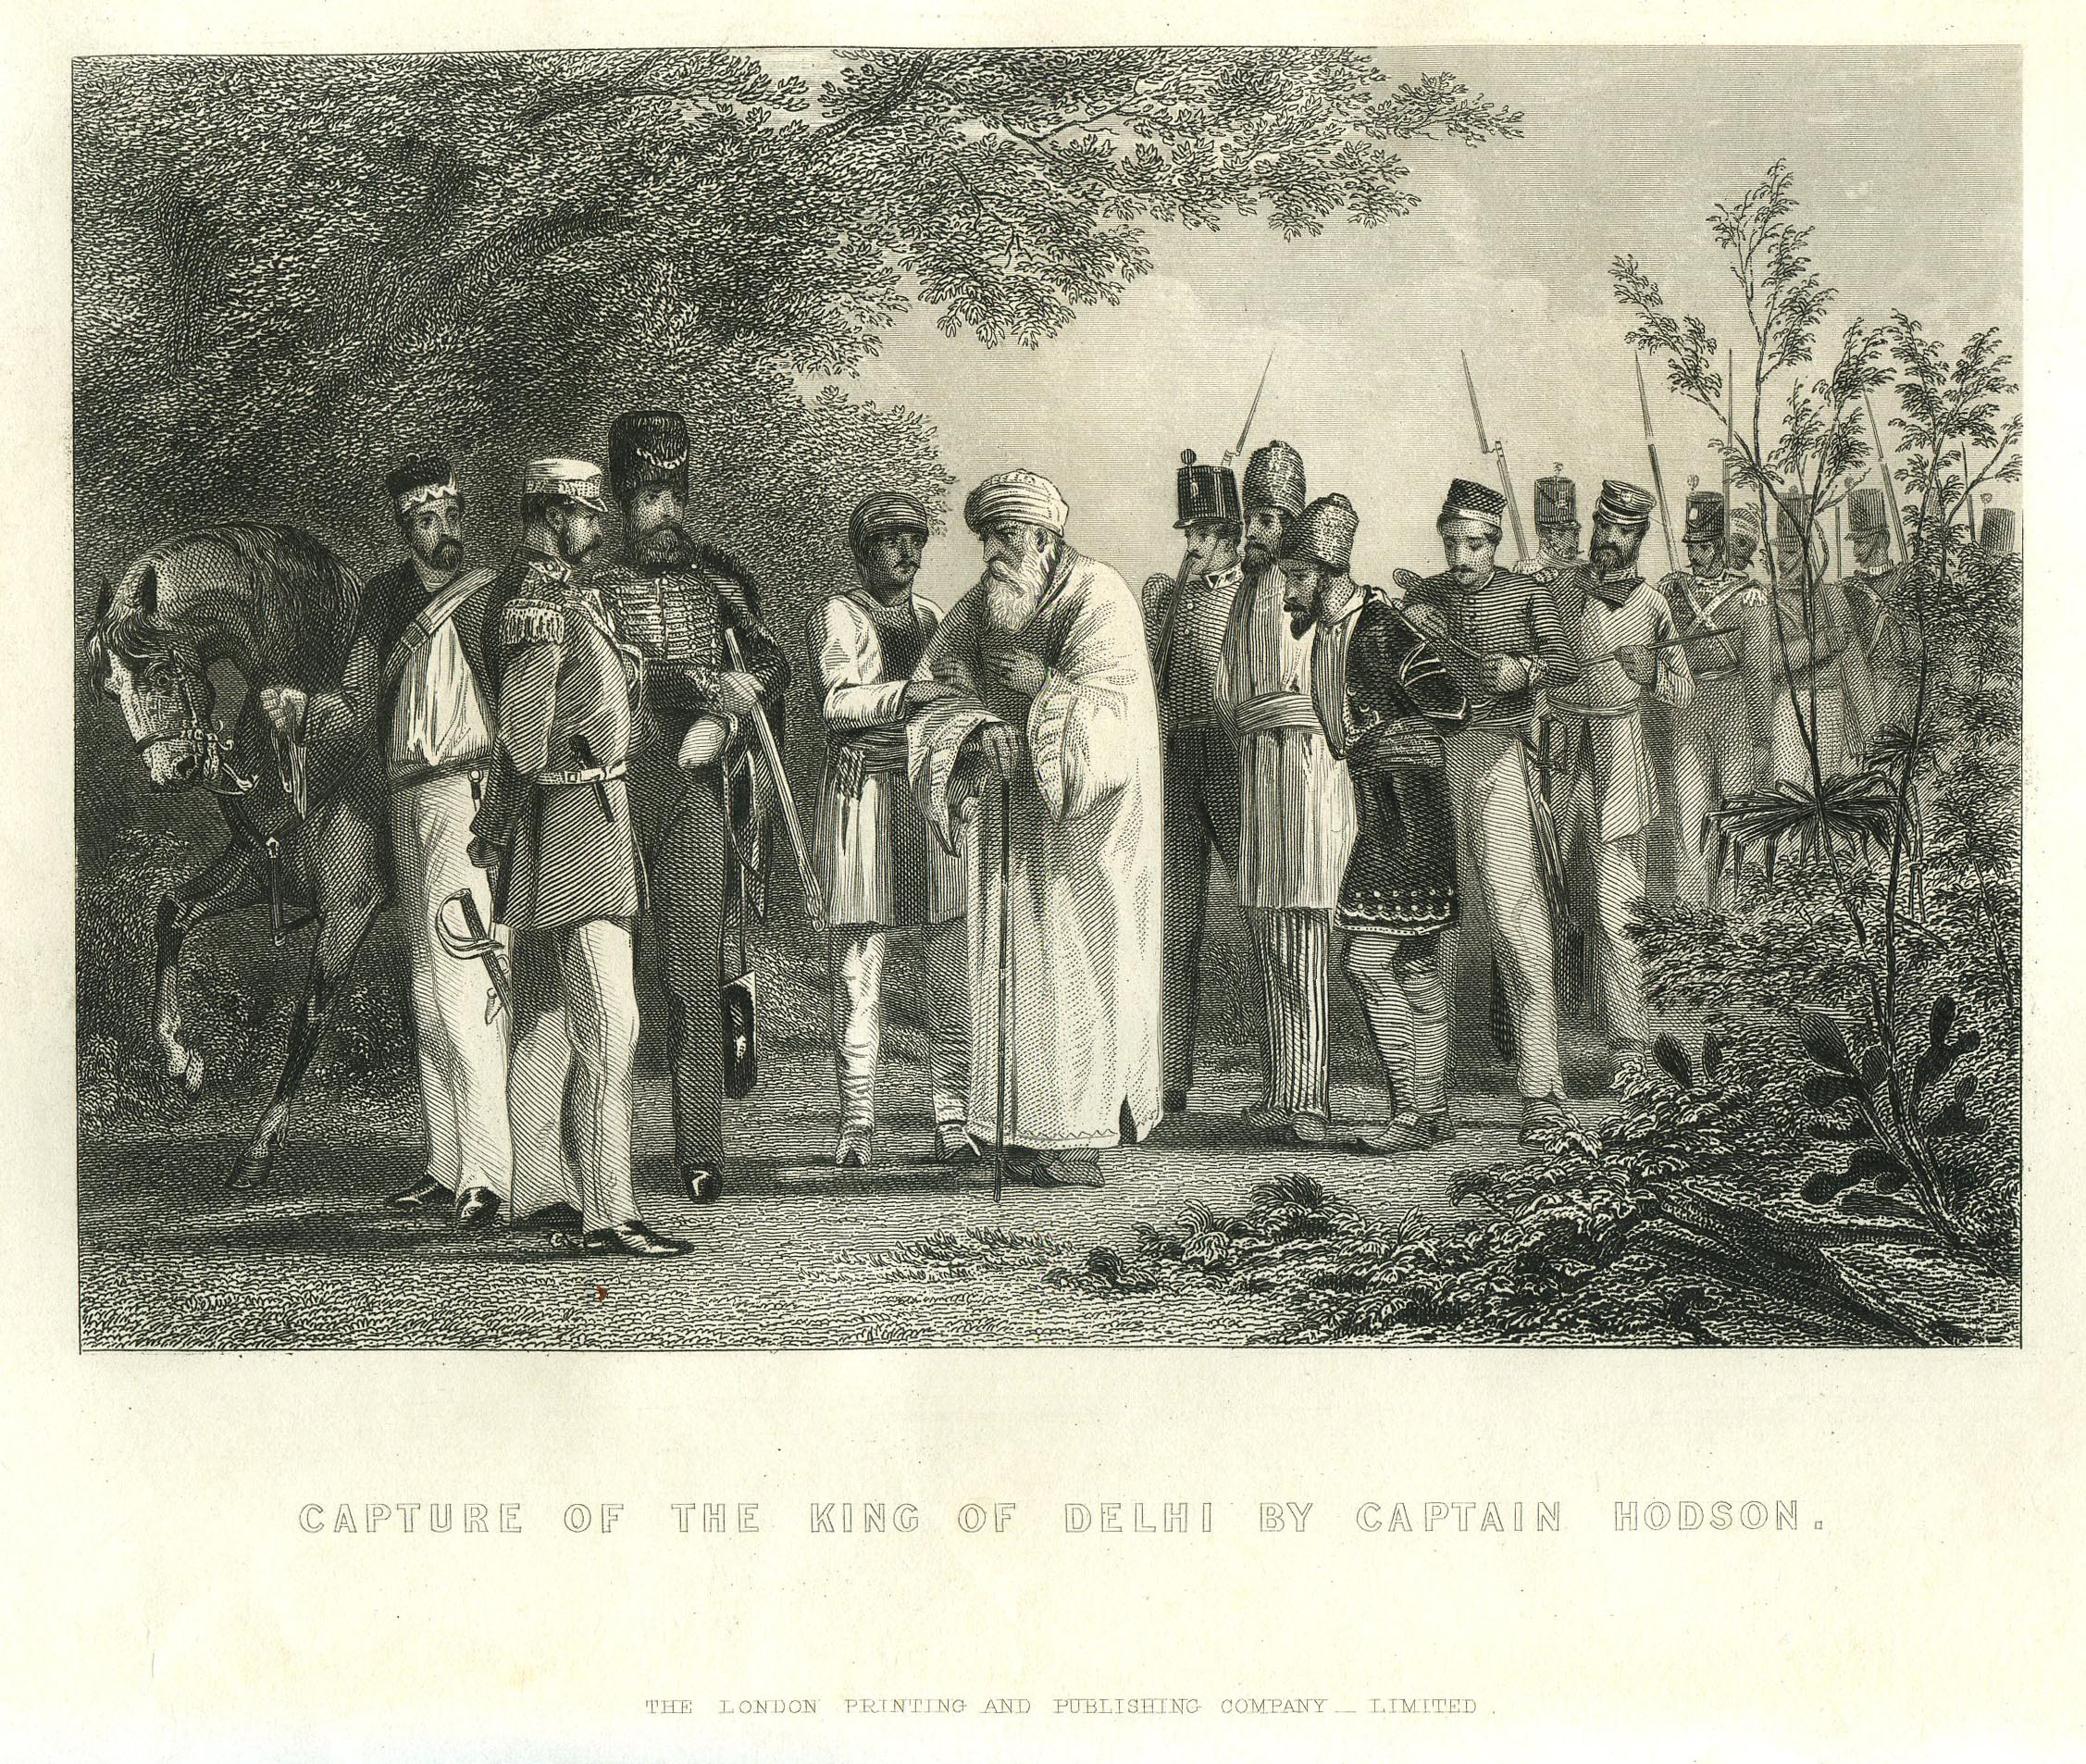 File:The capture of the king of delhi by Captain Hodson.jpg